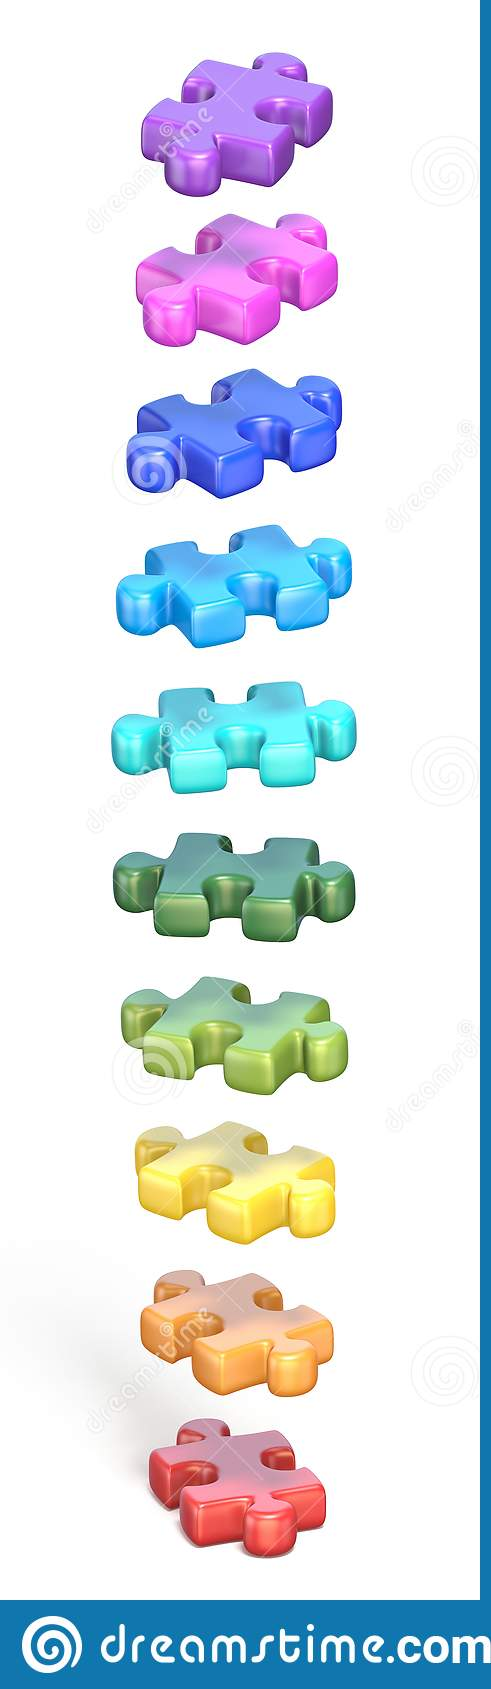 Collection of rainbow colored puzzle jigsaw pieces 3D